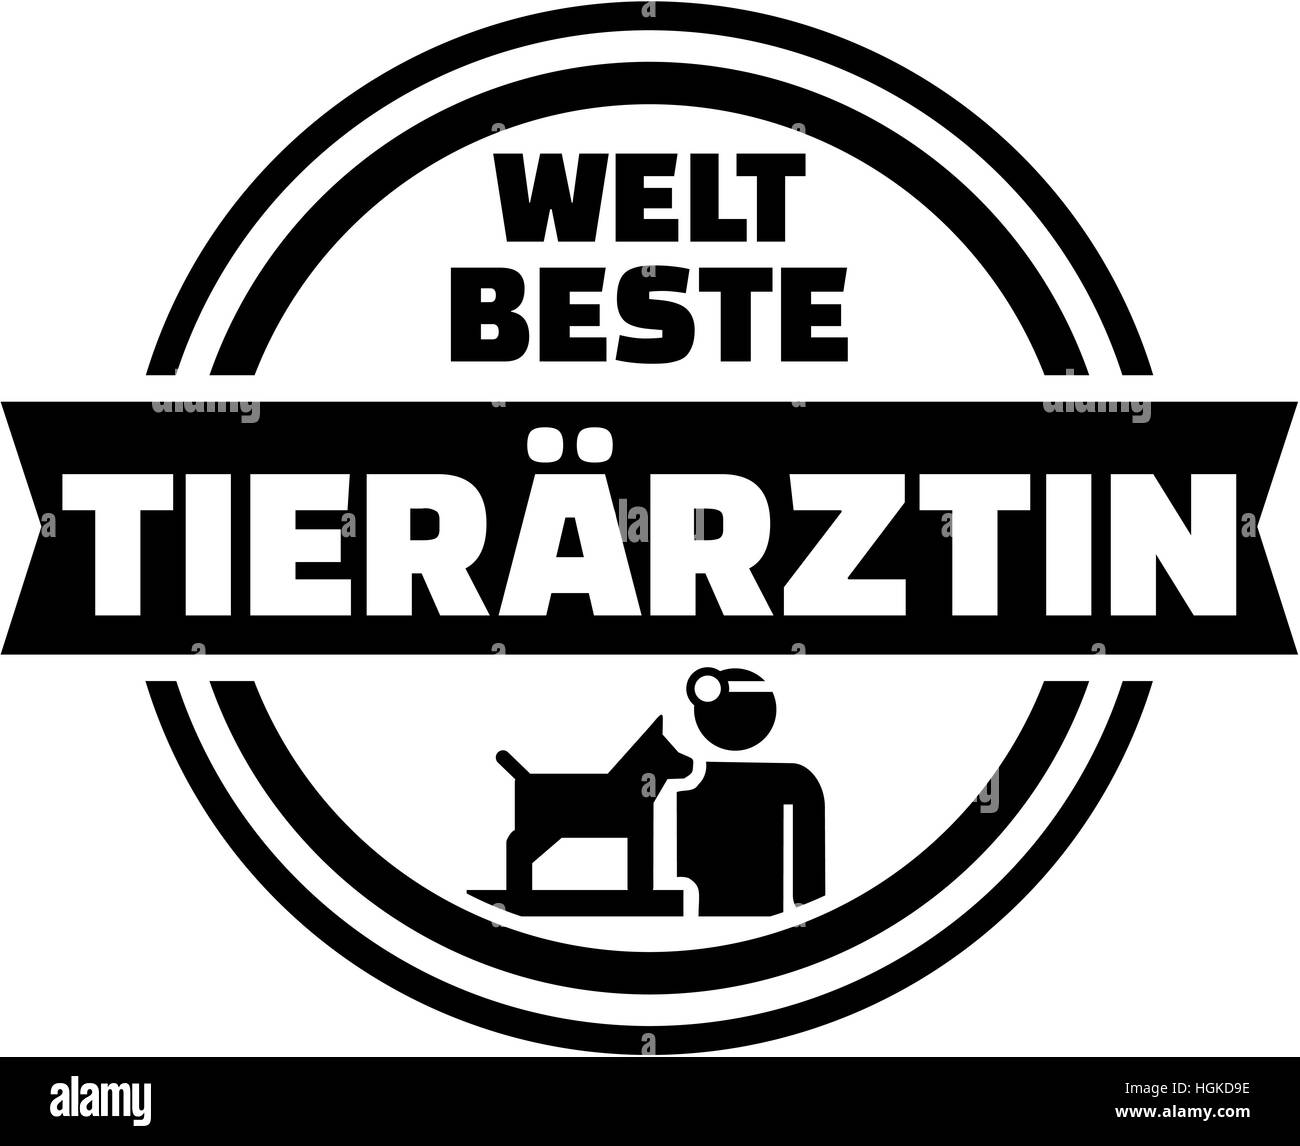 World's best female Veterinarian. German button. - Stock Image